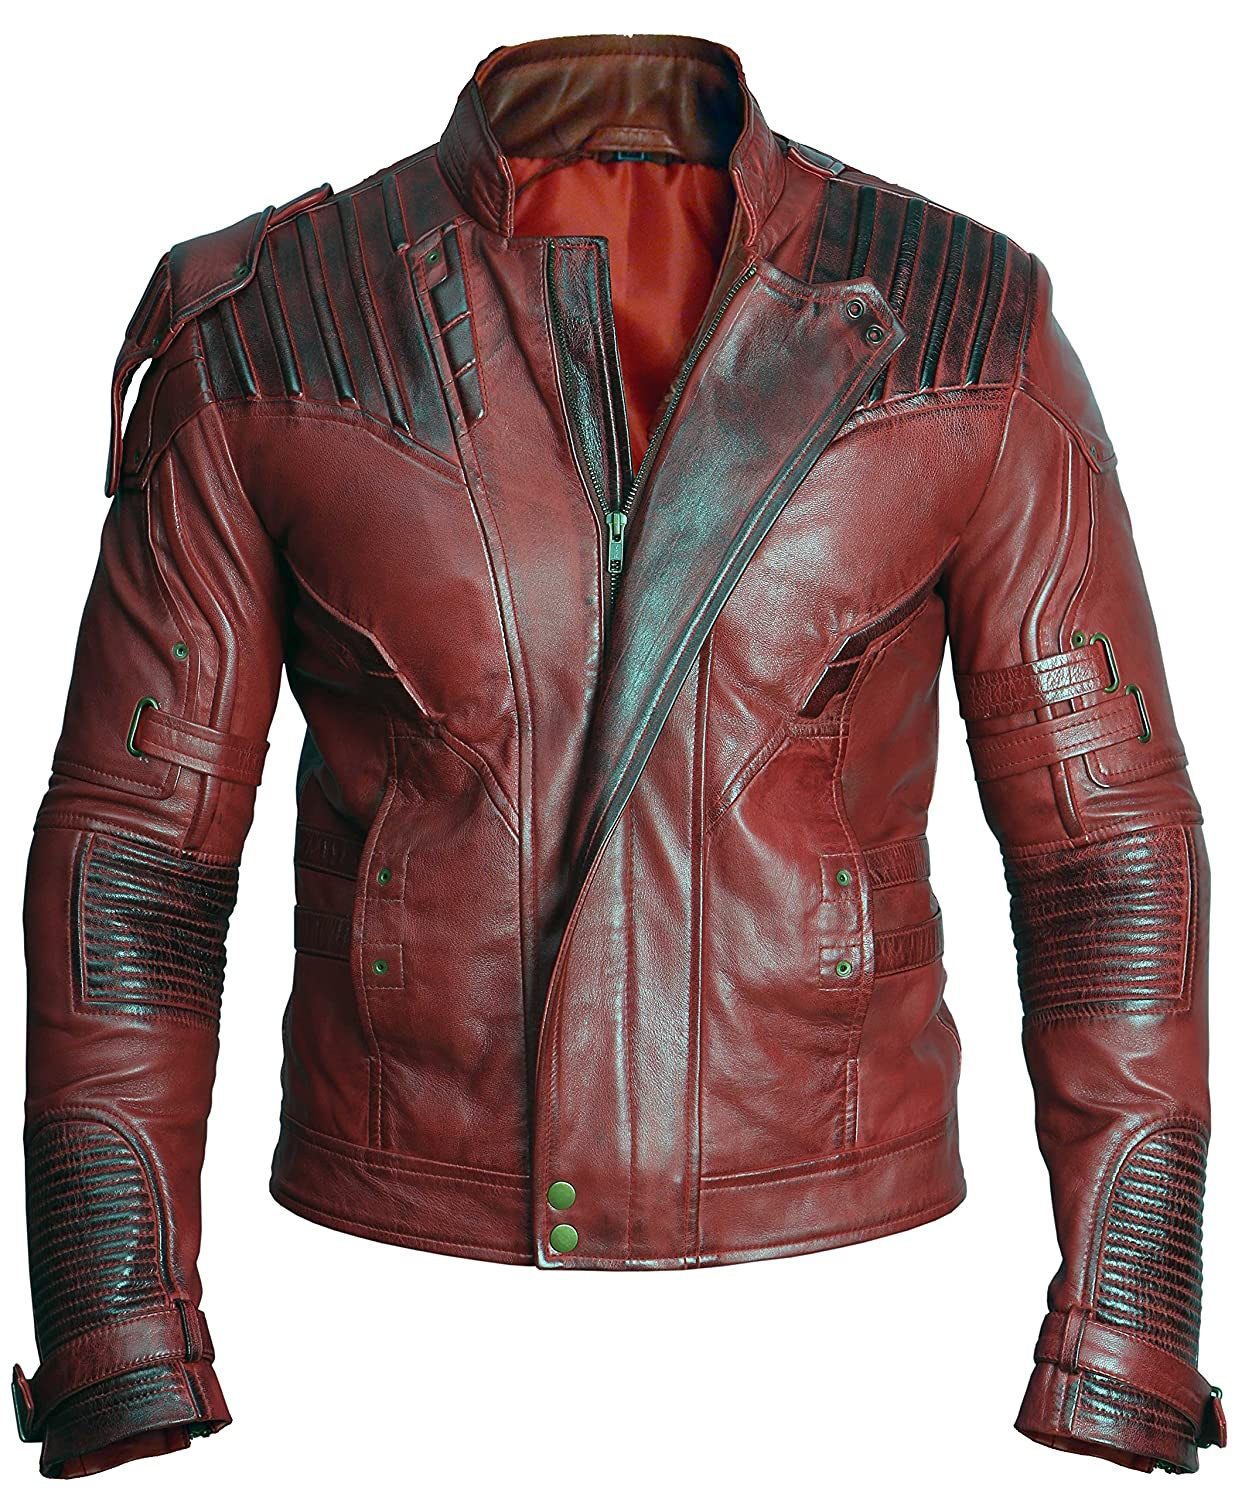 Superior Leather Garments - Chaqueta - Trenca - para Hombre: Amazon.es: Ropa y accesorios